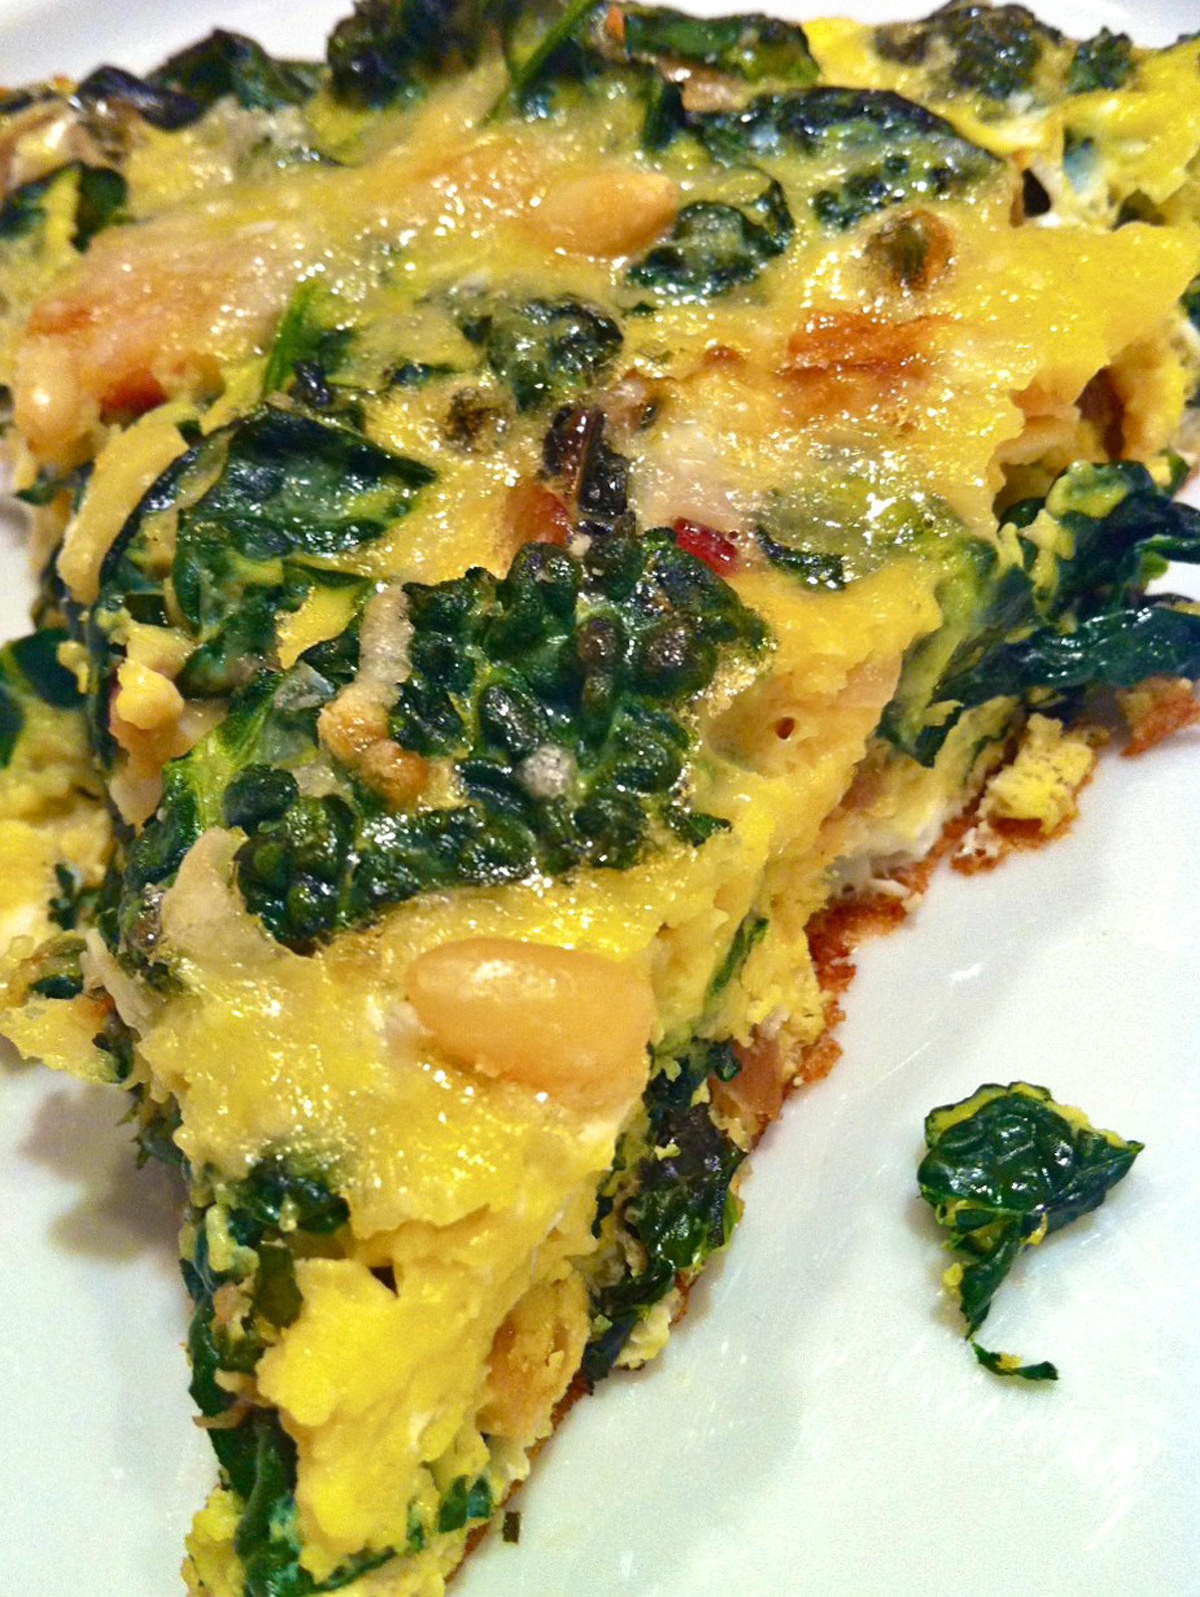 Pancetta, Kale, and Parmesan Frittata The Fountain Avenue Kitchen